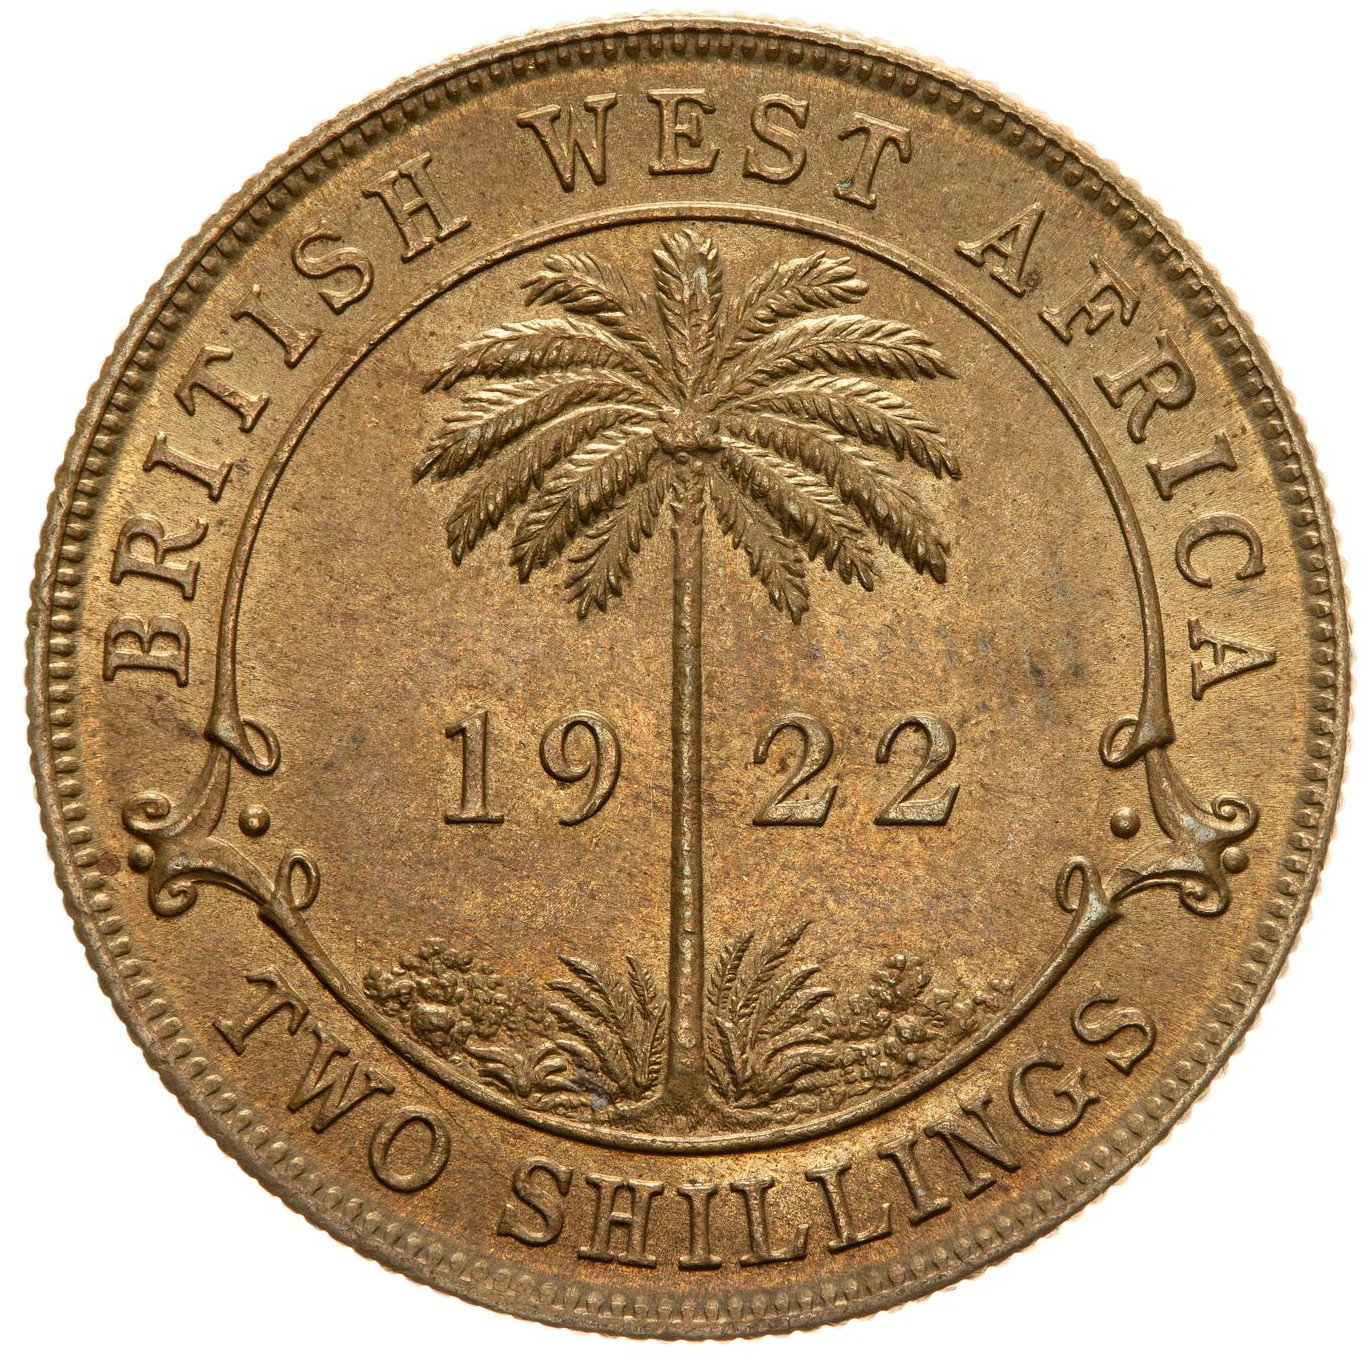 Two Shillings 1922: Photo Coin - 2 Shillings, British West Africa, 1922